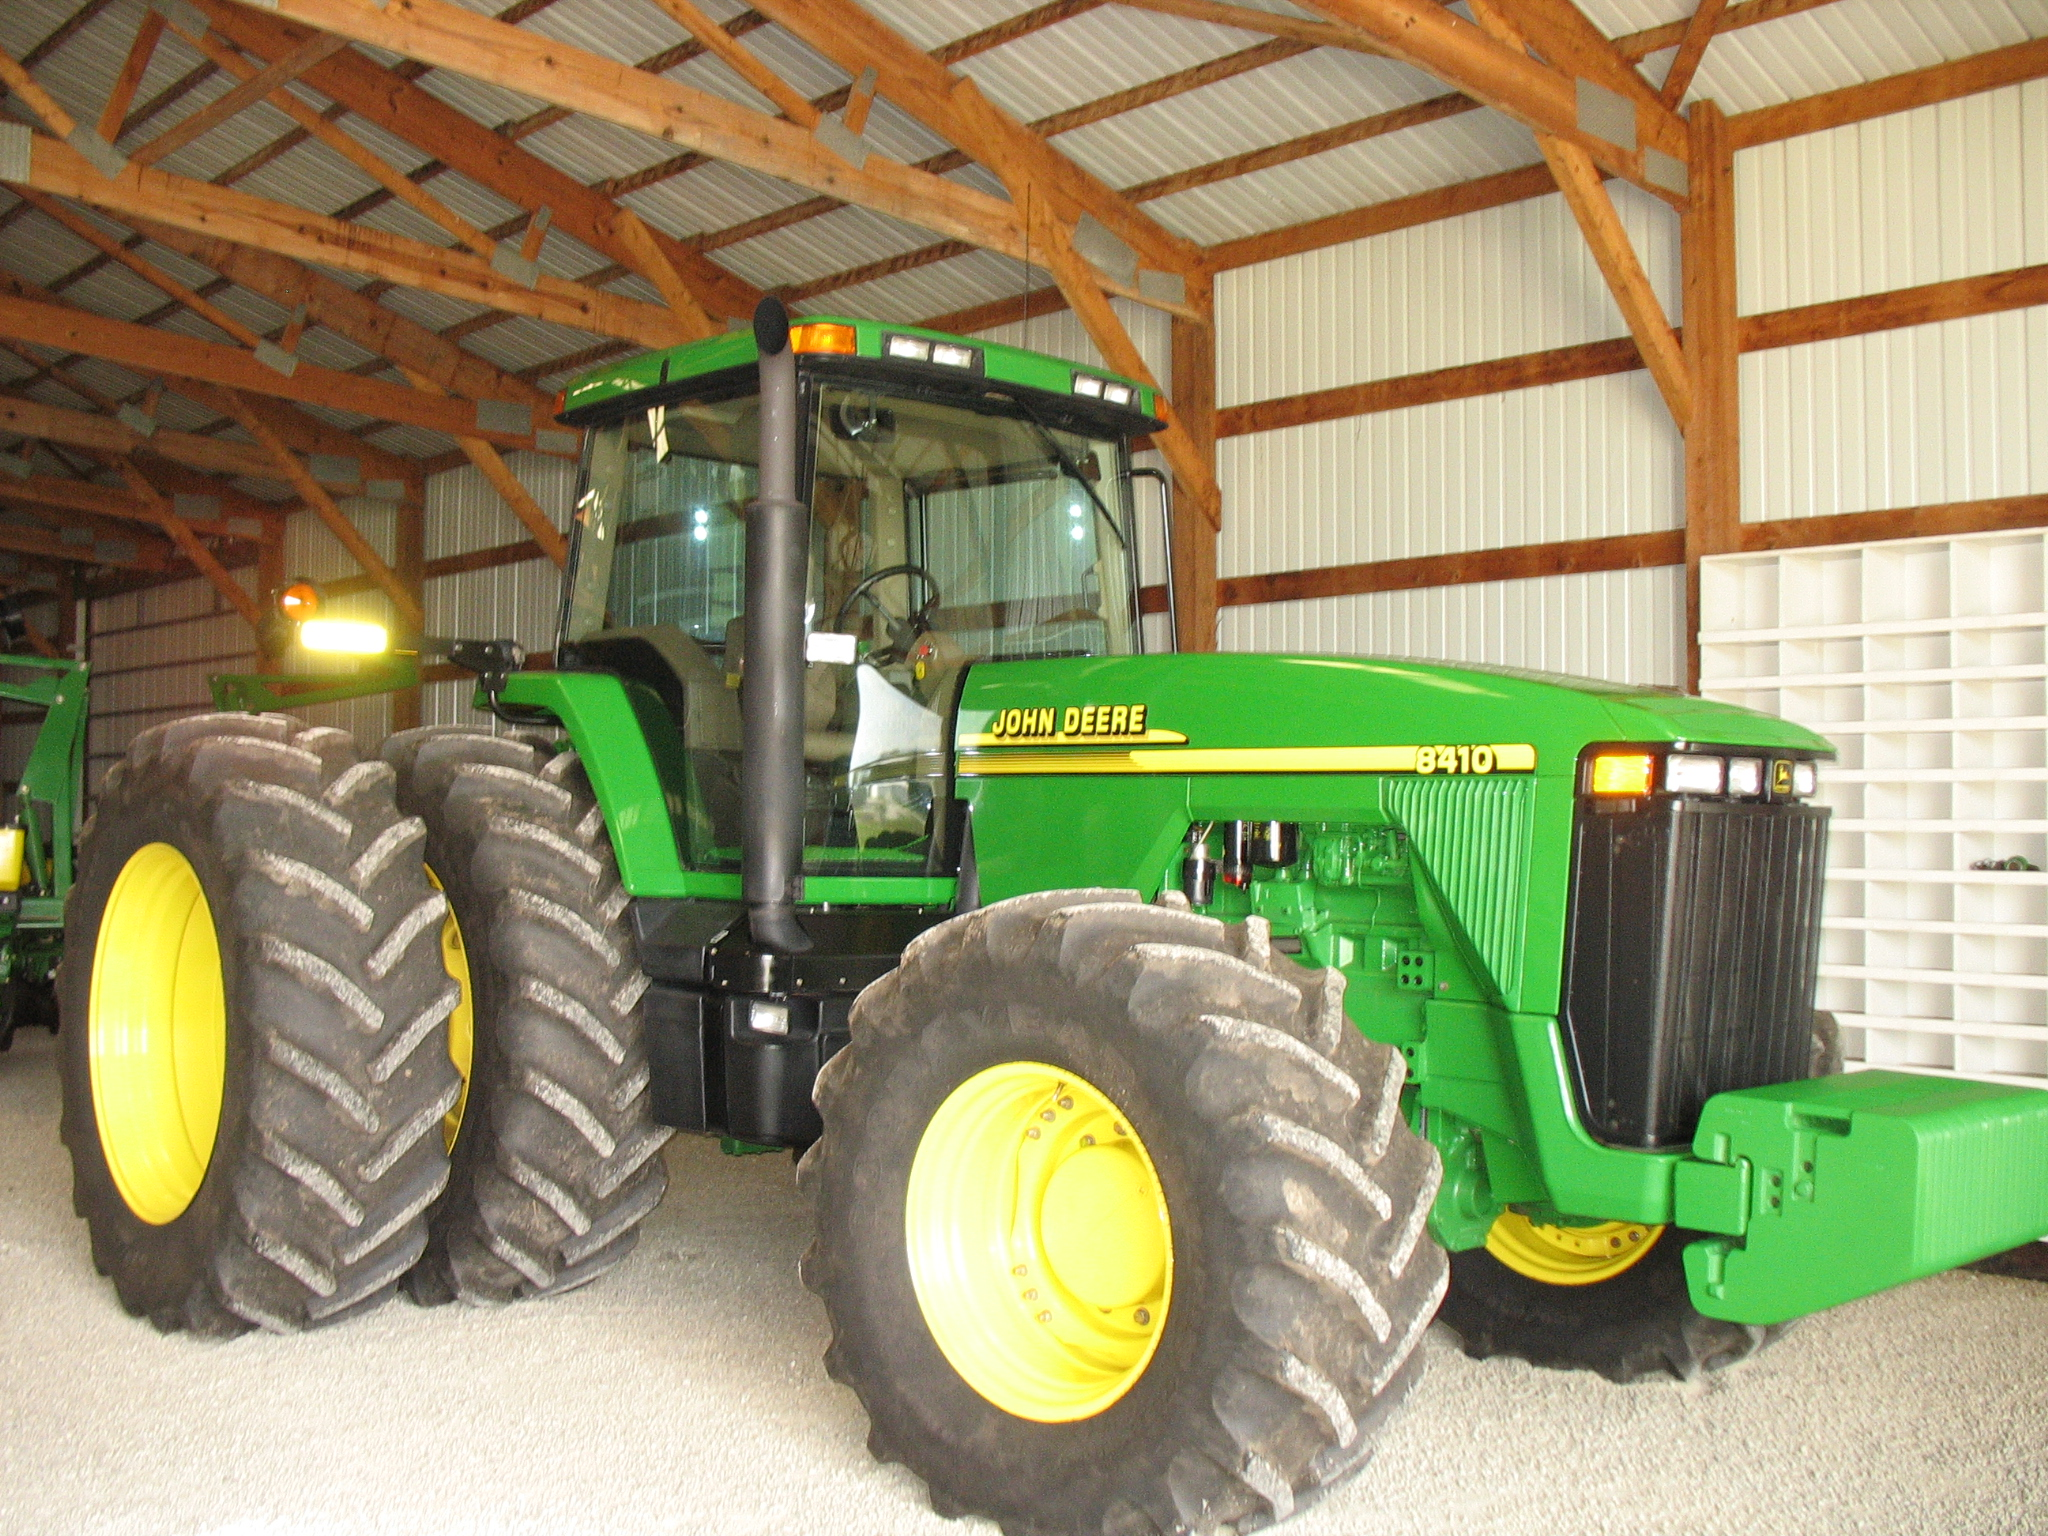 John Deere 8410 Tractor Sells For 136k At Auction